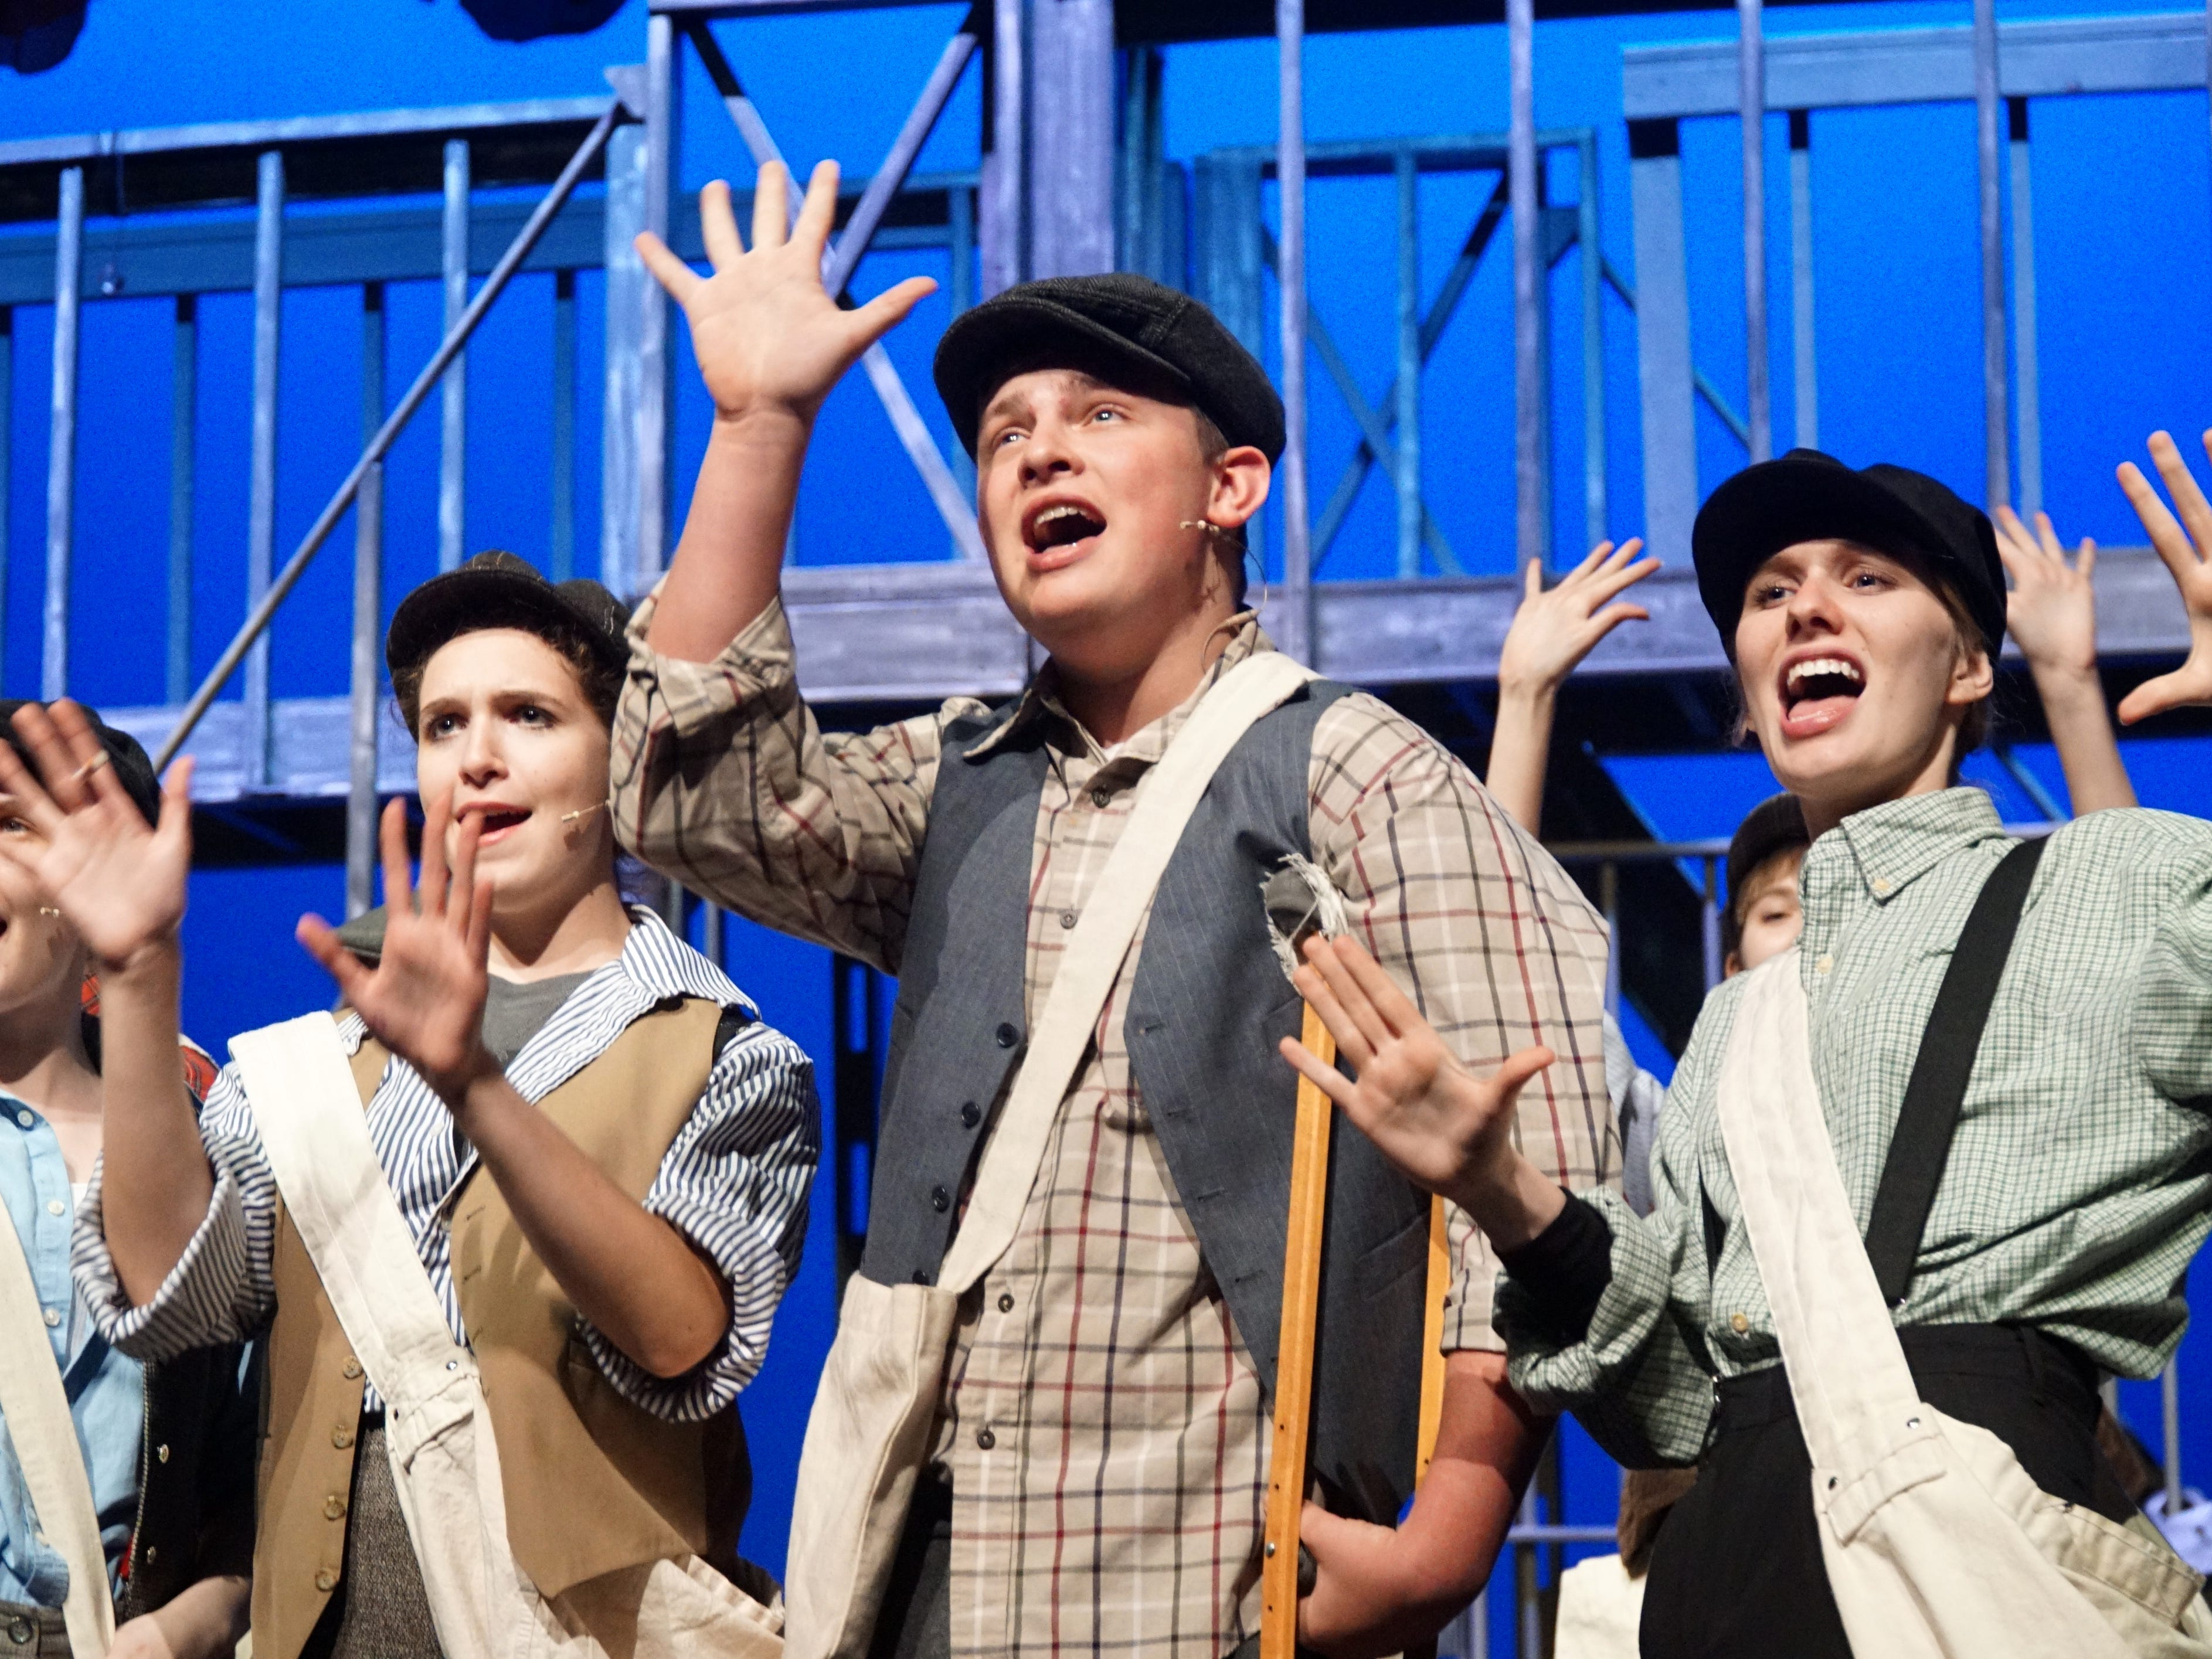 Cast members of Newsies, including Crutchy (Grant Kruger), rehease on April 18.